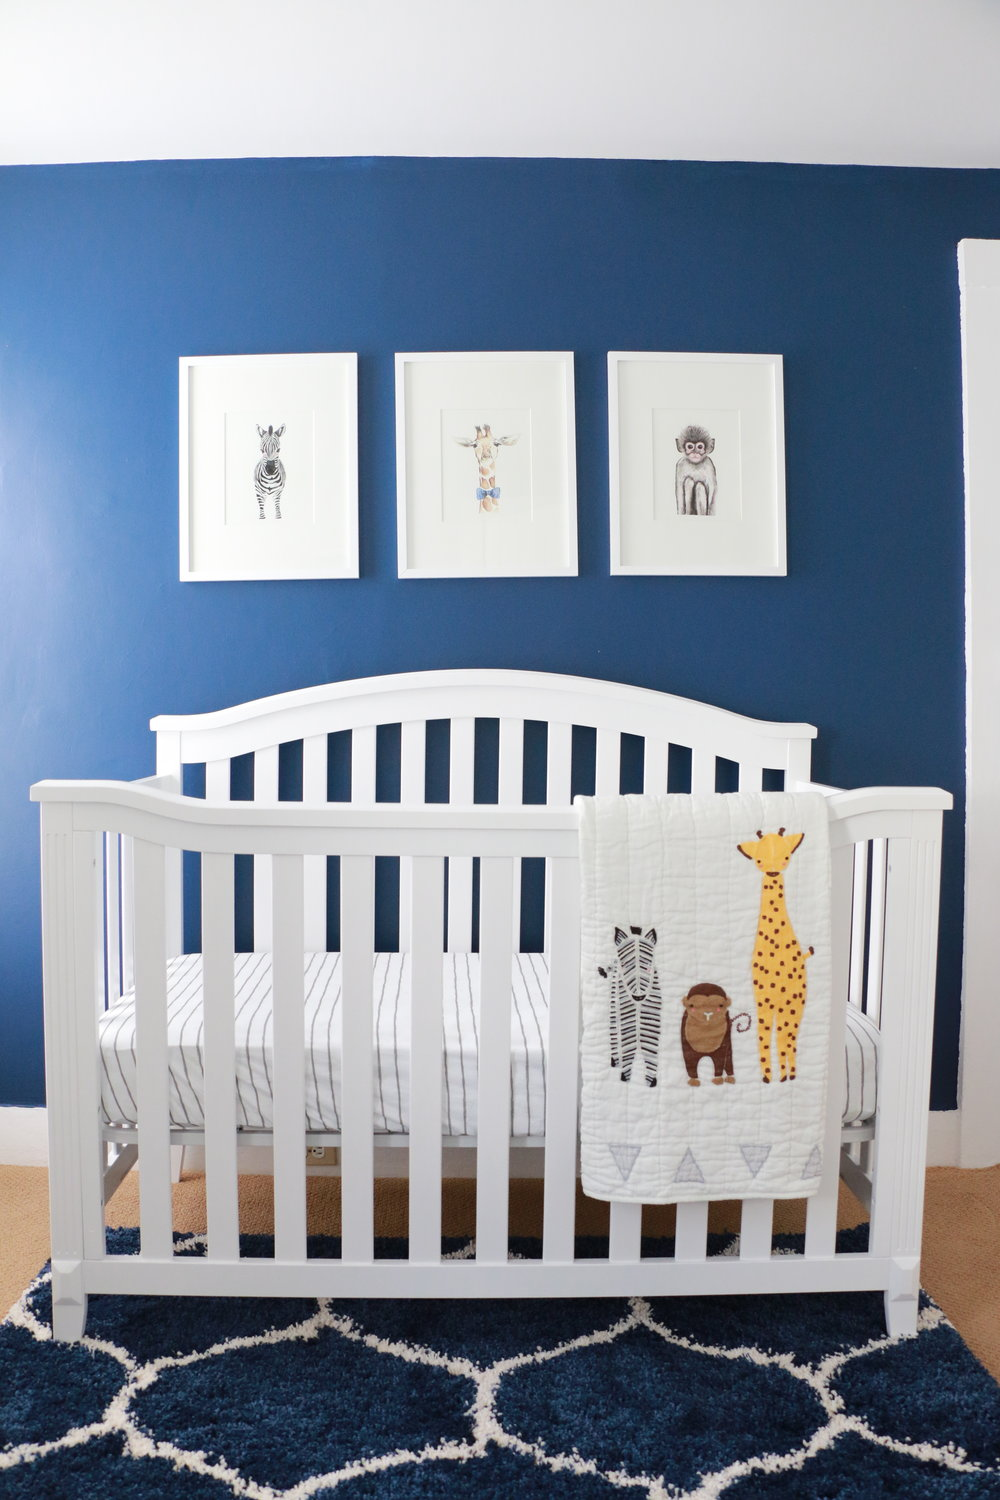 Anthony-and-Stork_jungle_animals_baby_nursery_2966.jpg